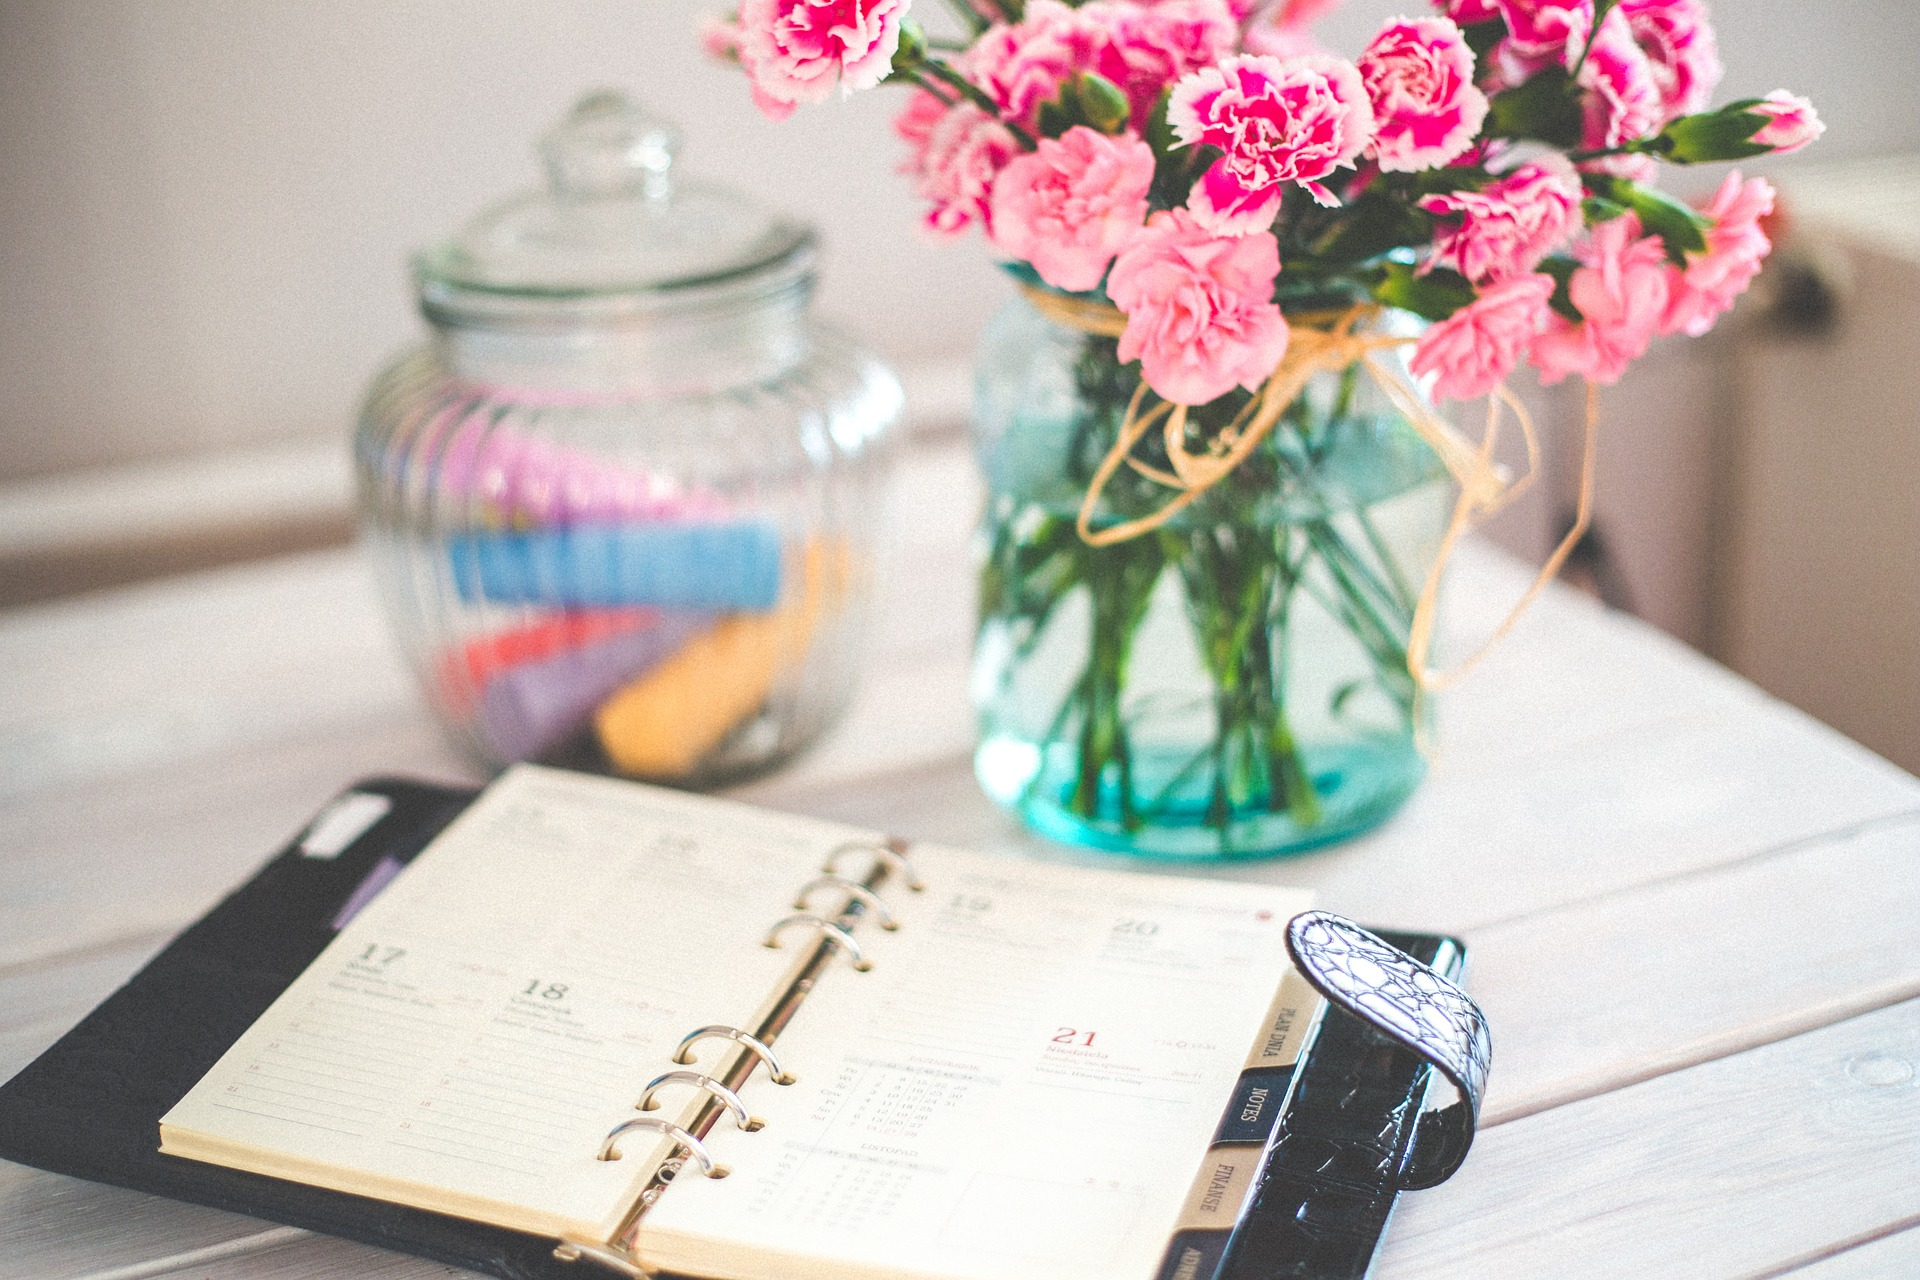 diary with flowers